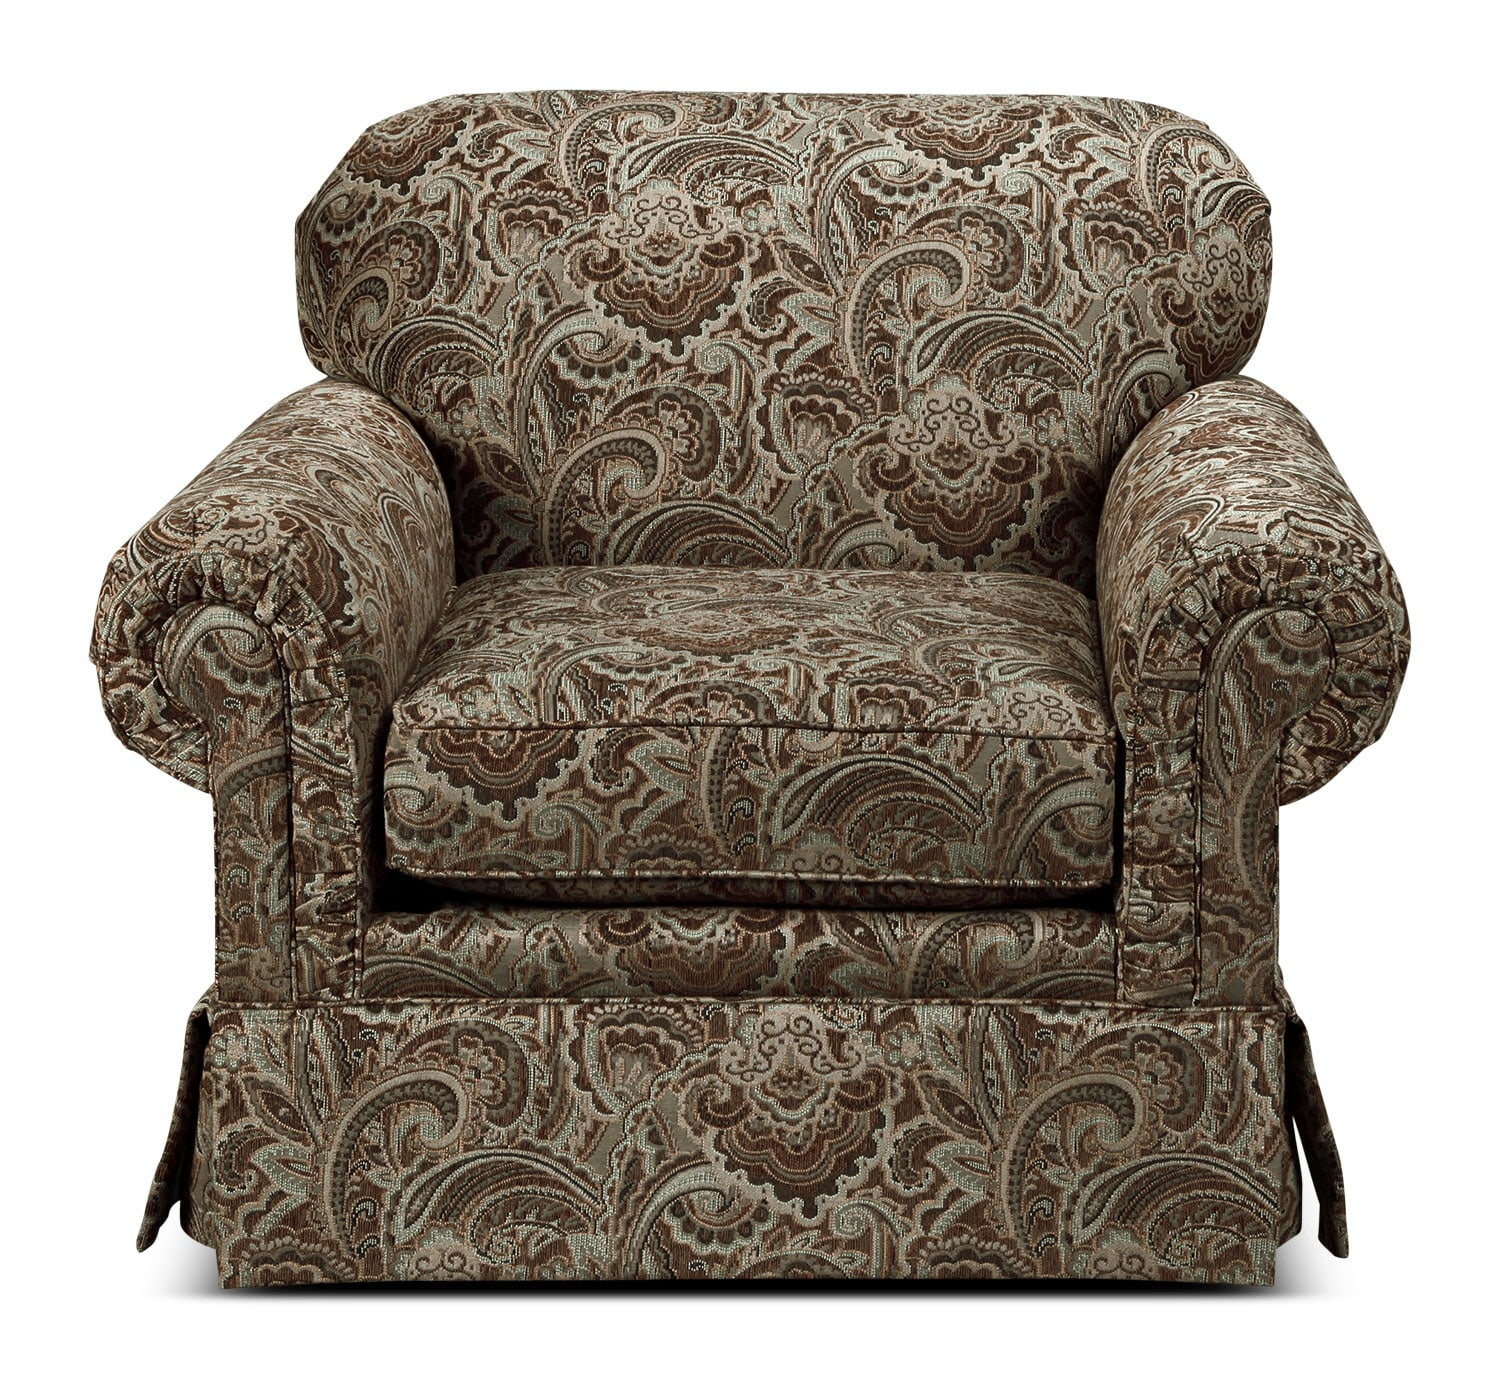 Beacon Chair - Paisley